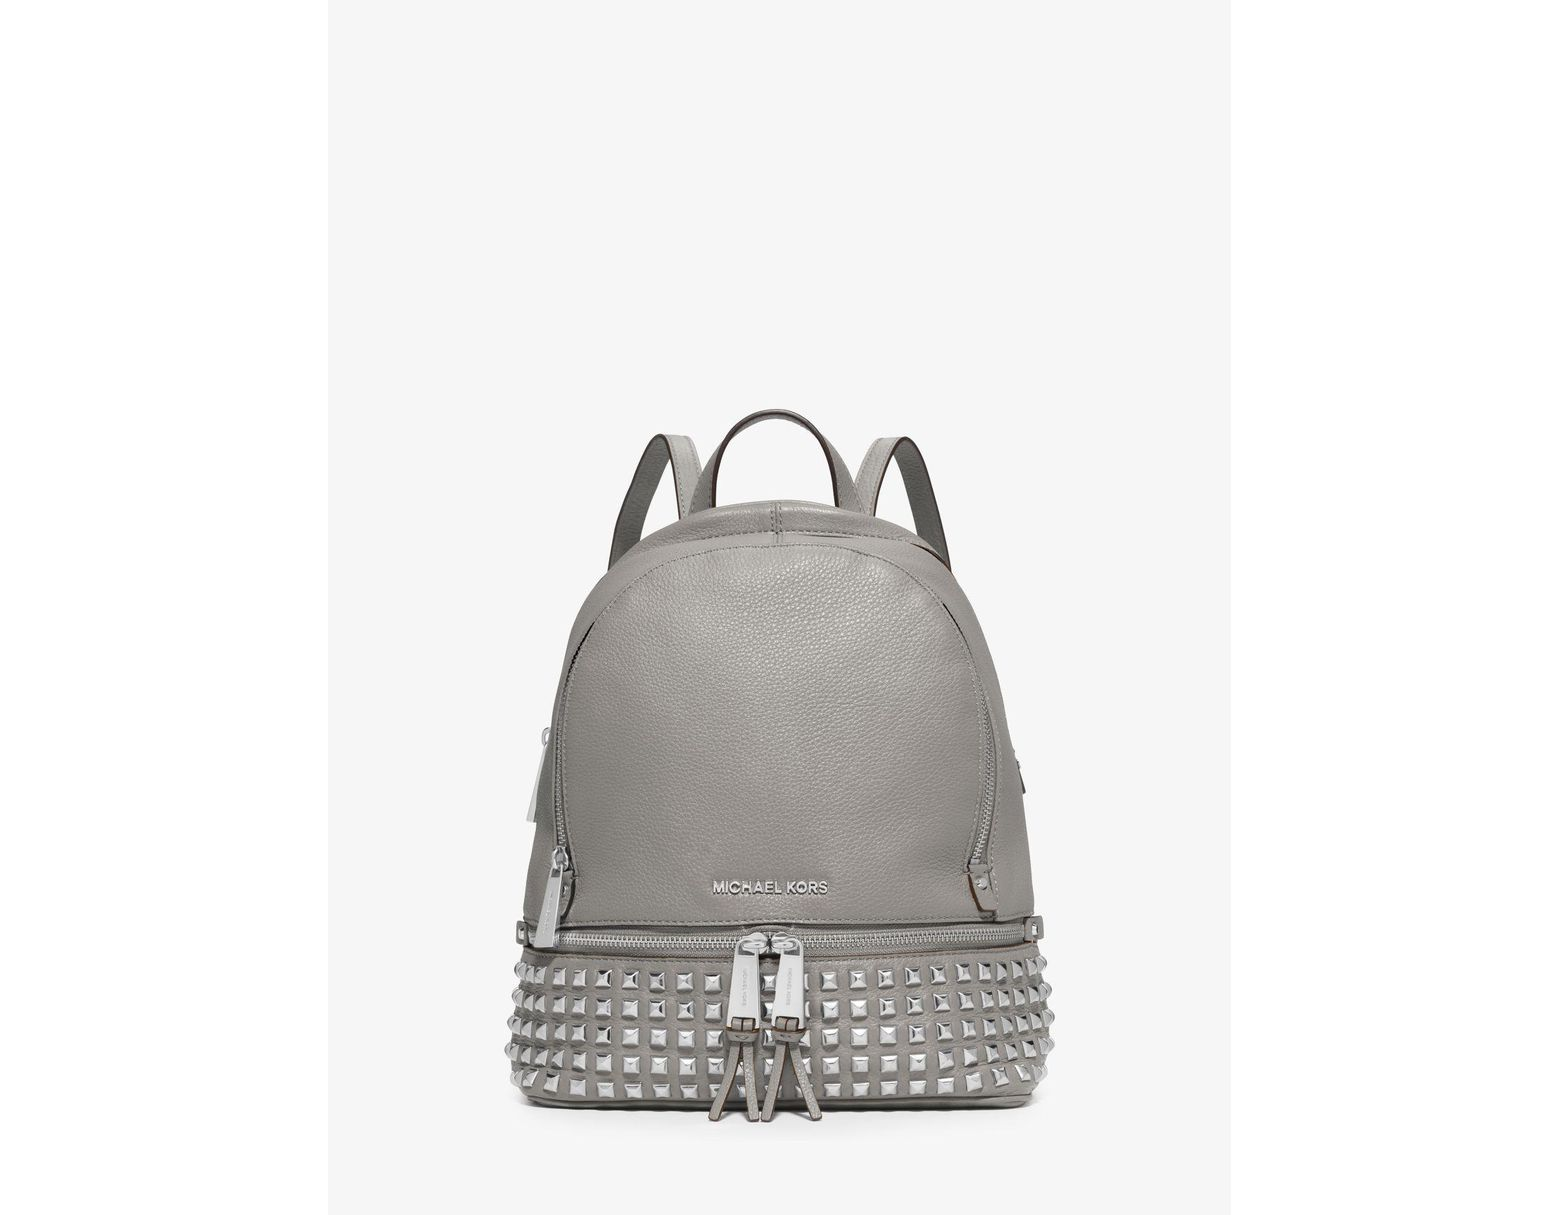 9b6cba1e23be Michael Kors Rhea Medium Studded Pebbled Leather Backpack in White - Lyst